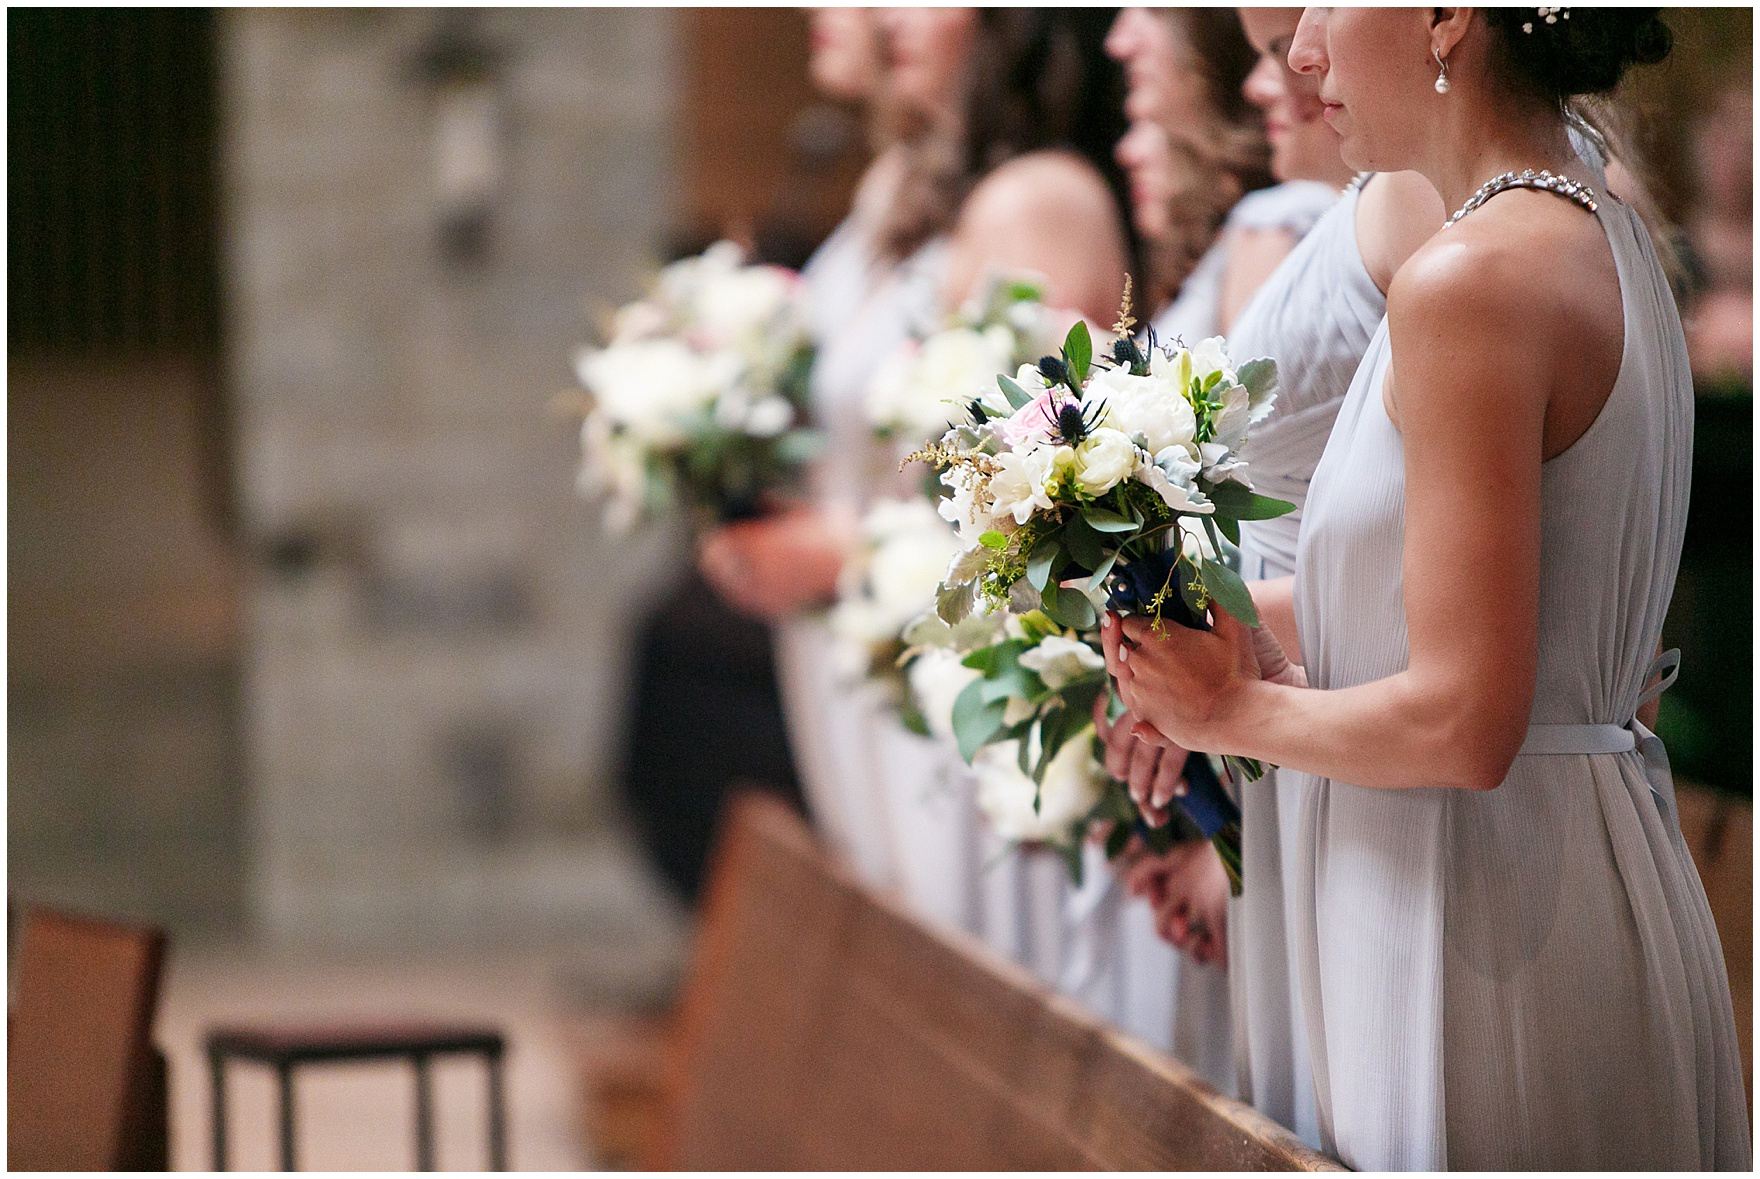 Bridesmaids stand in a line during the ceremony at St. Anne's Catholic Community, for a Biltmore Country Club Barrington wedding.